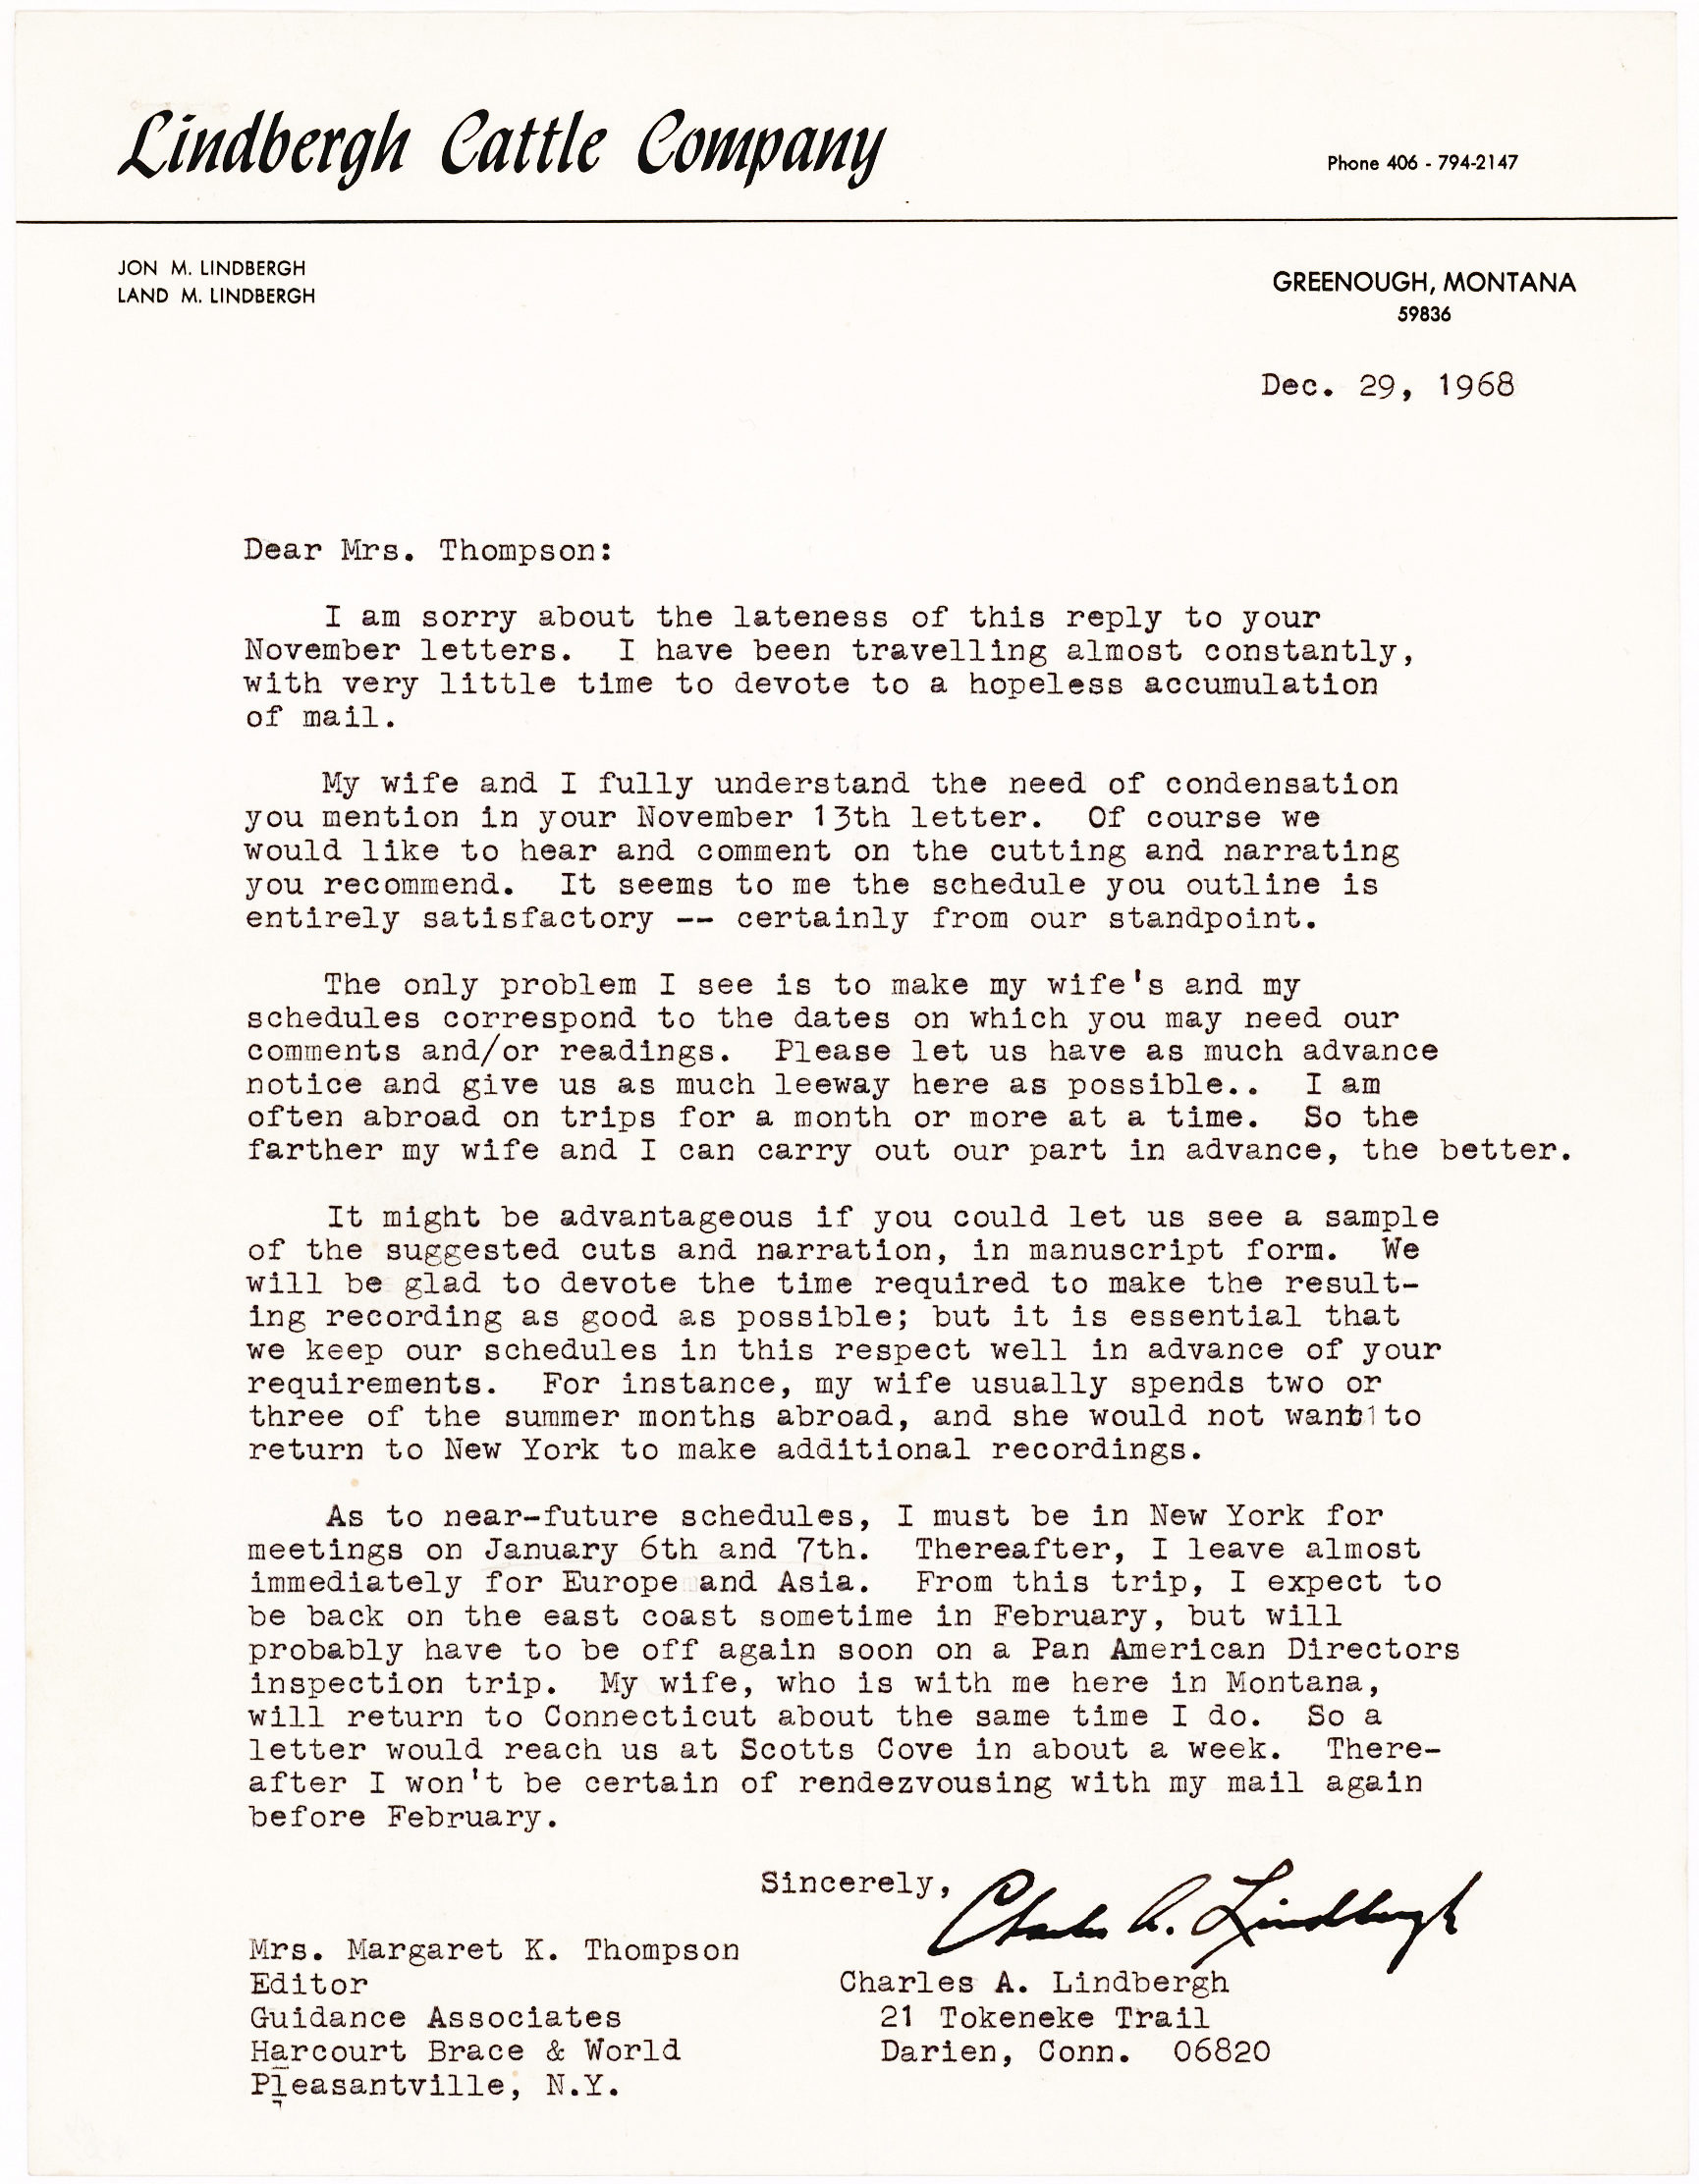 Typed Letter Signed by Charles Lindbergh, the American aviator who made the very first solo non-stop transatlantic flight – written on the letterhead of the Lindbergh Cattle Company